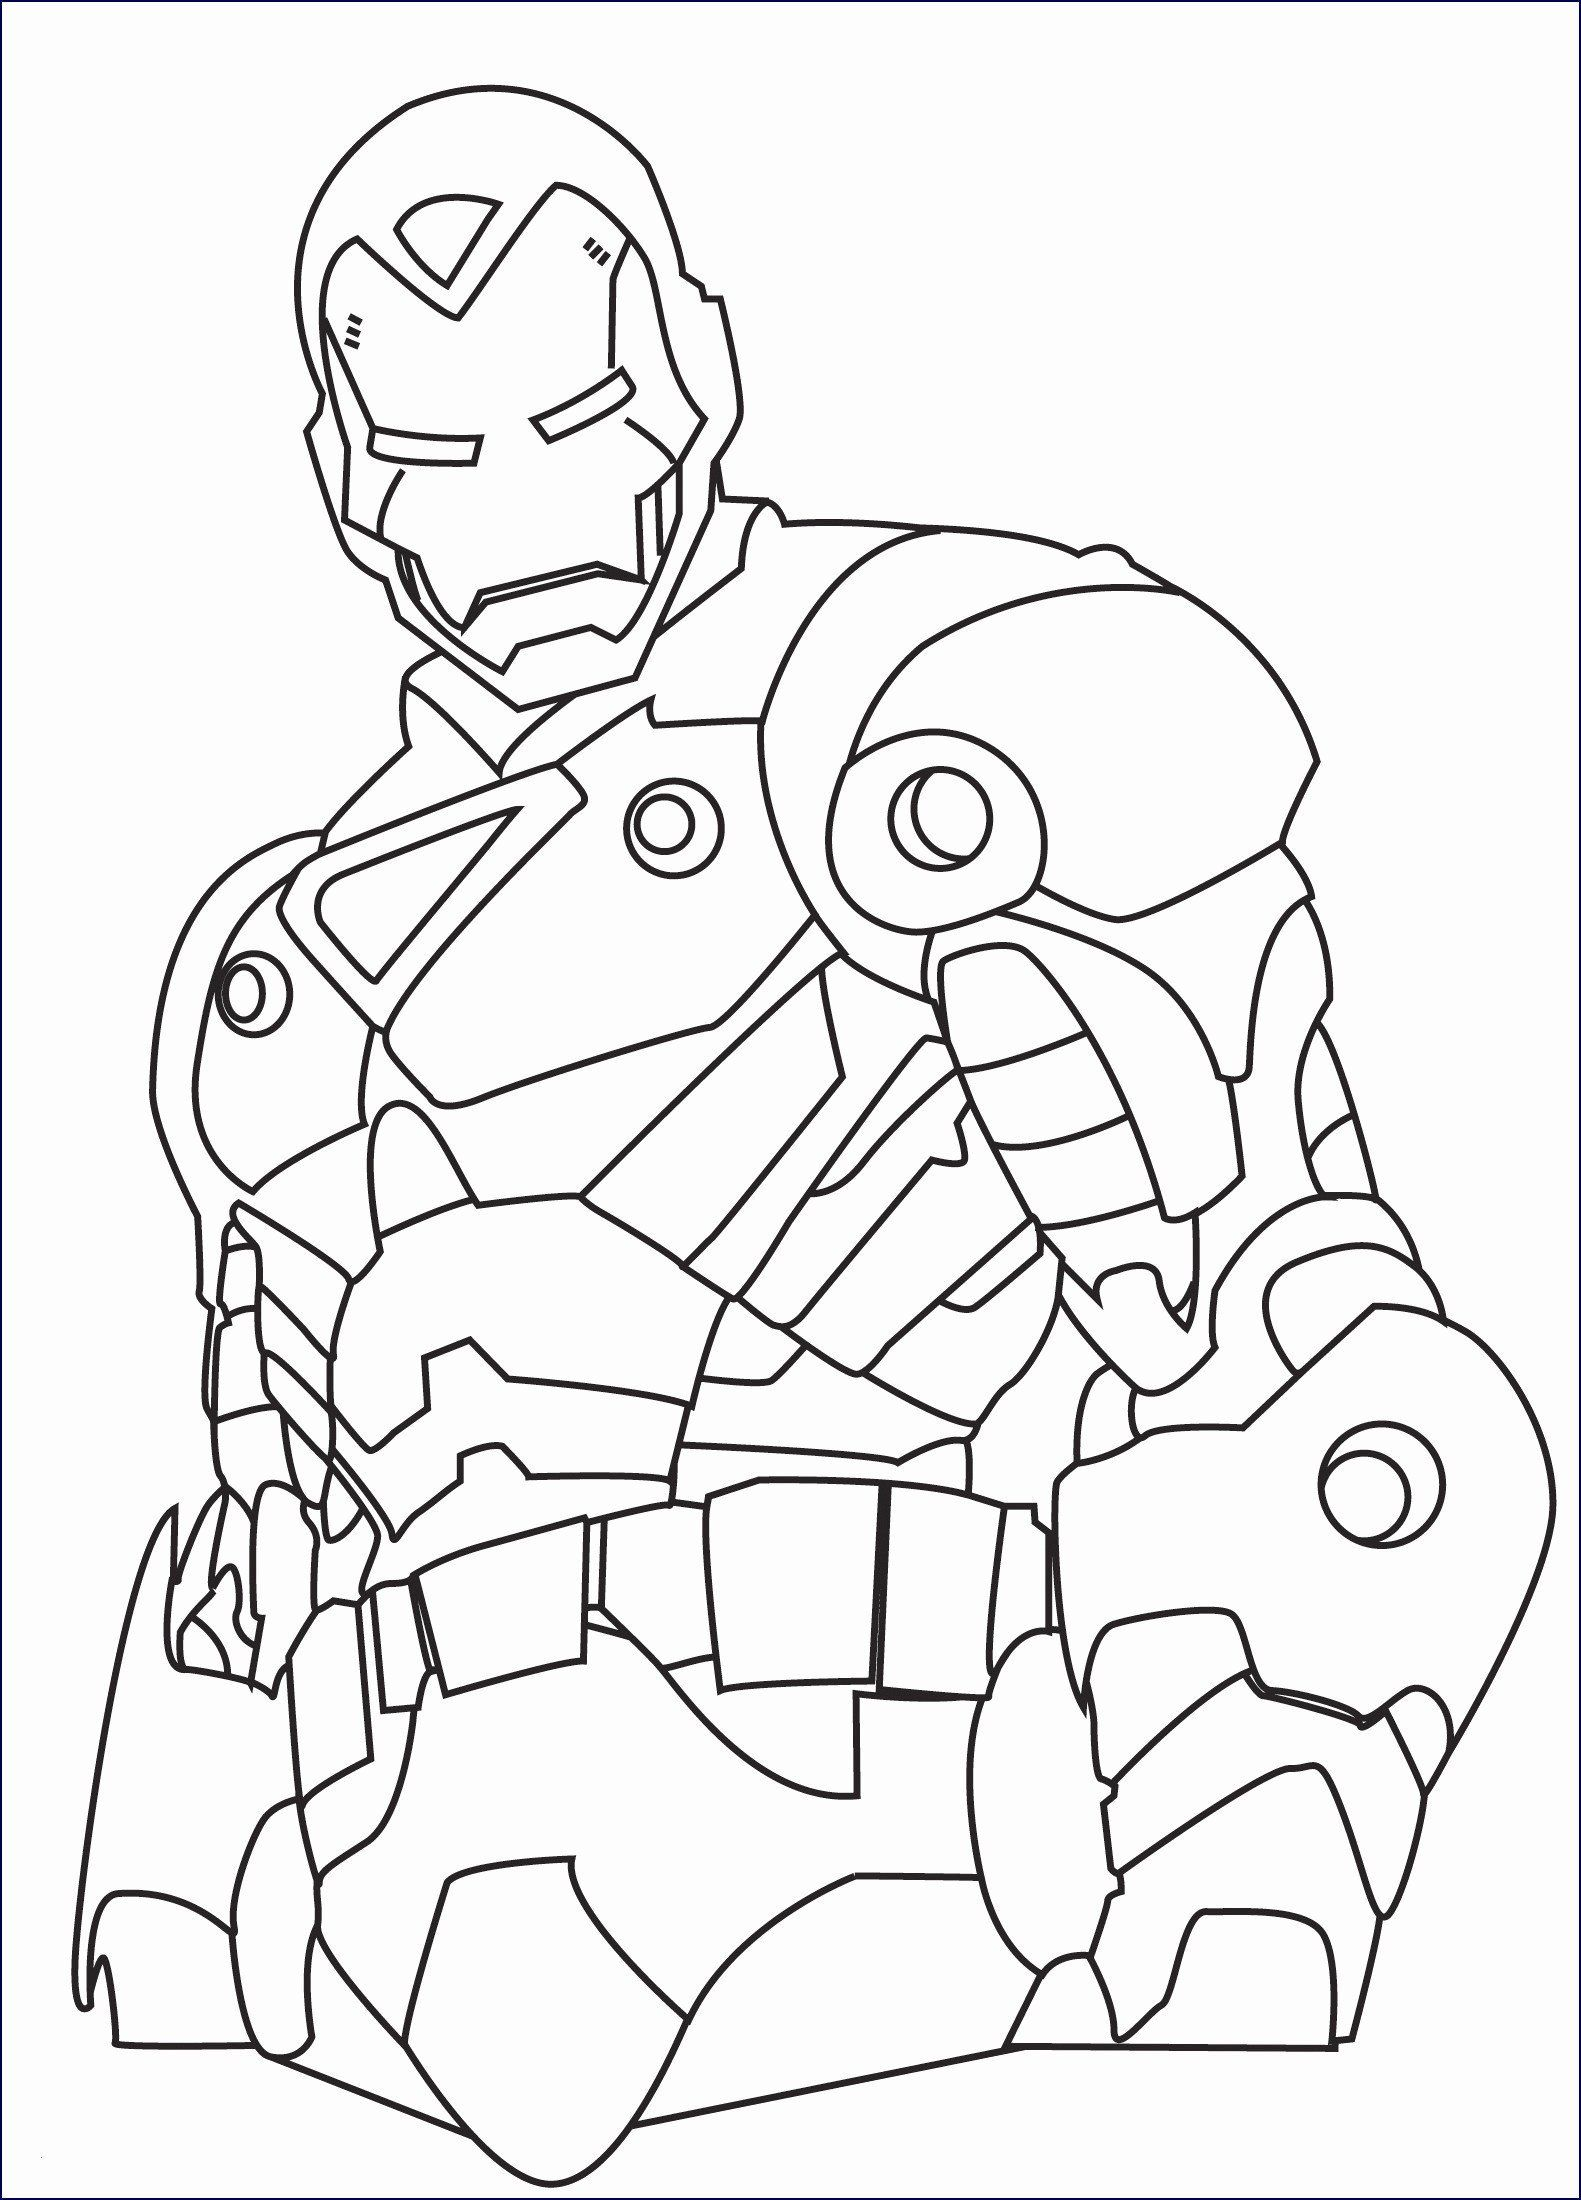 Lego Spiderman Coloring Pages Lovely Iron Man Ausmalbilder Einzigartig Spider Man Ausmalbilder Superhero Coloring Pages Superhero Coloring Hulk Coloring Pages